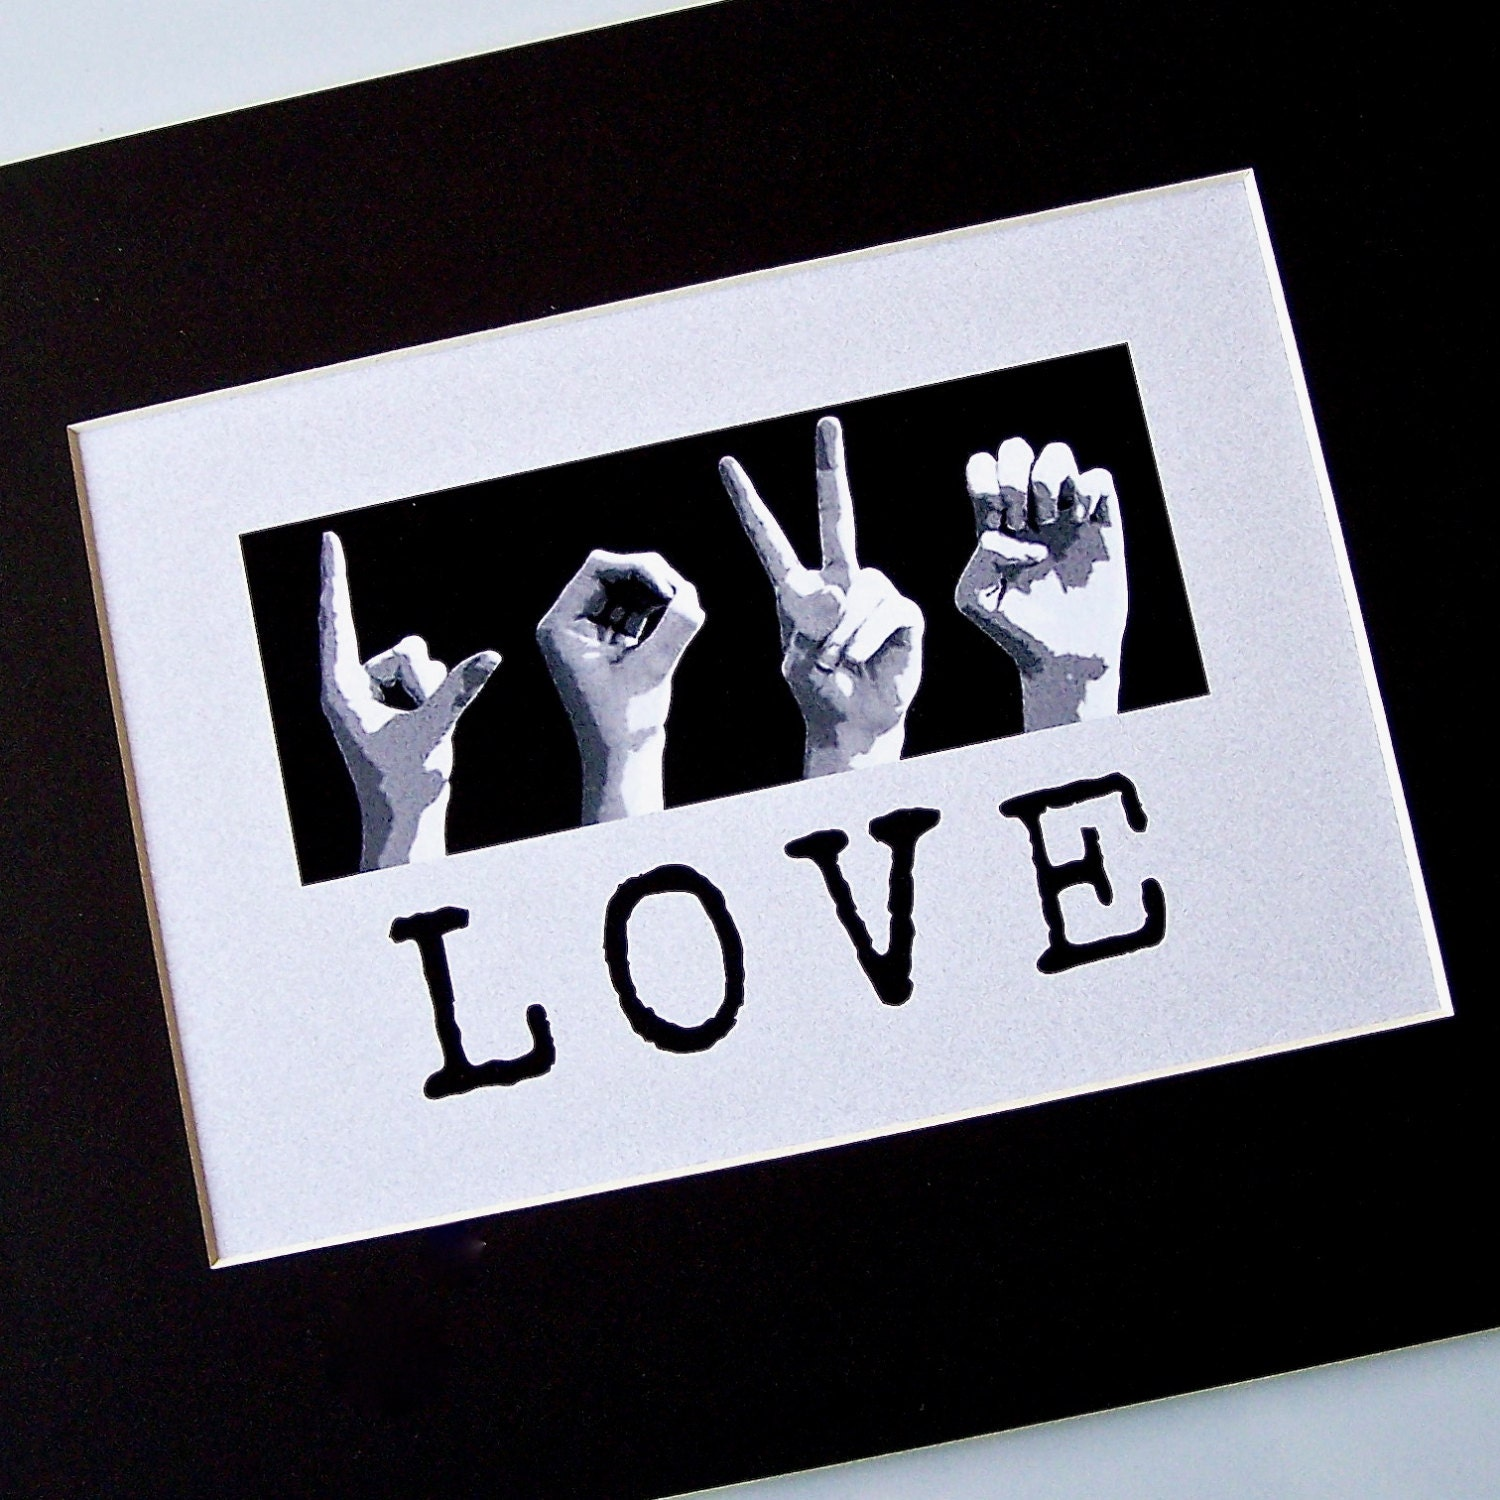 Love Asl American Sign Language Letters  Black  White Digital